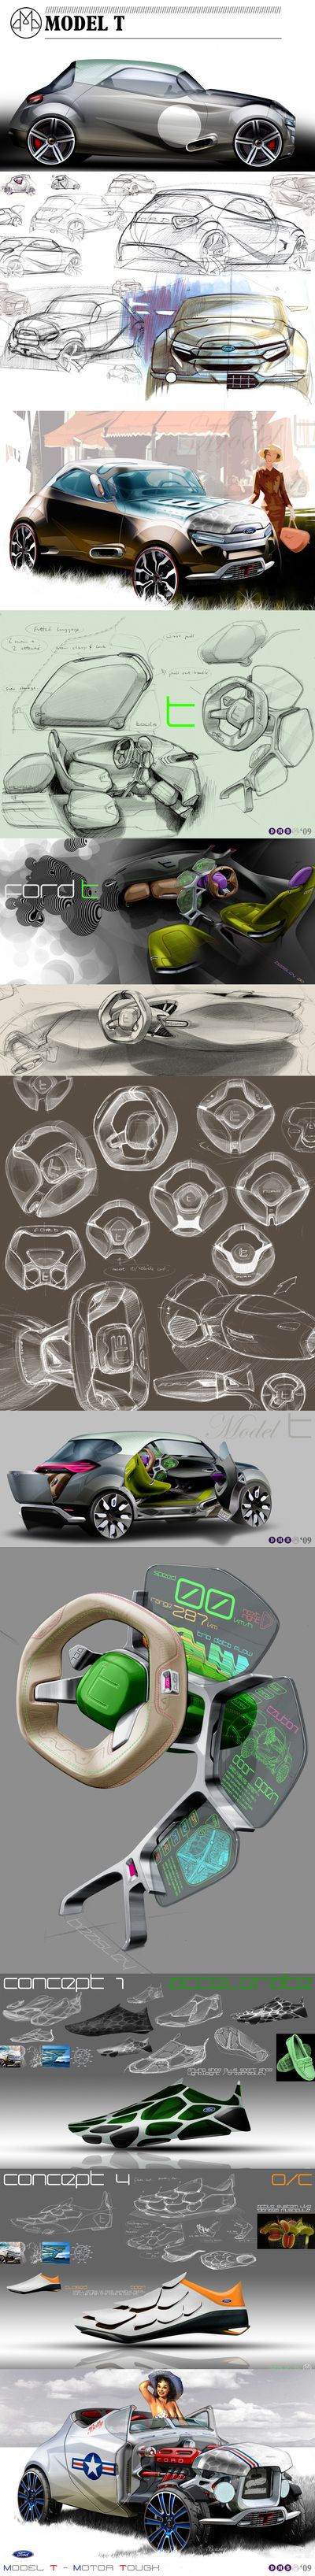 263 Best Zuknftige Projekte Images On Pinterest Antique Cars The Bmw I1 Is An Electric Singleseater Trikecar Concept By Designer Ford Model T Sketch Futureistic Design